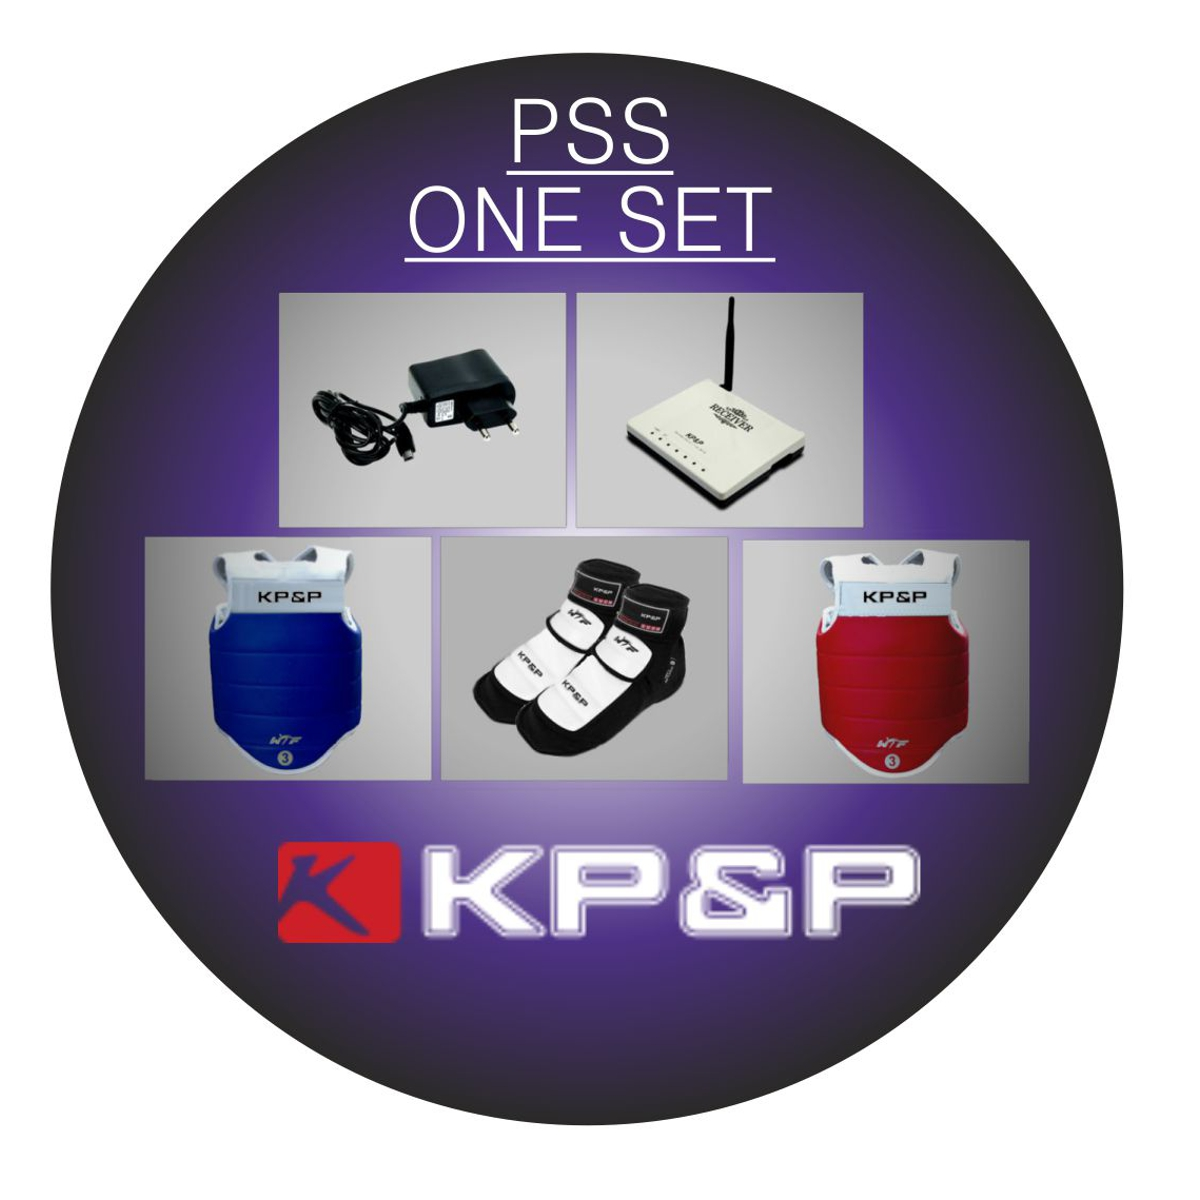 KP&P ONE SET